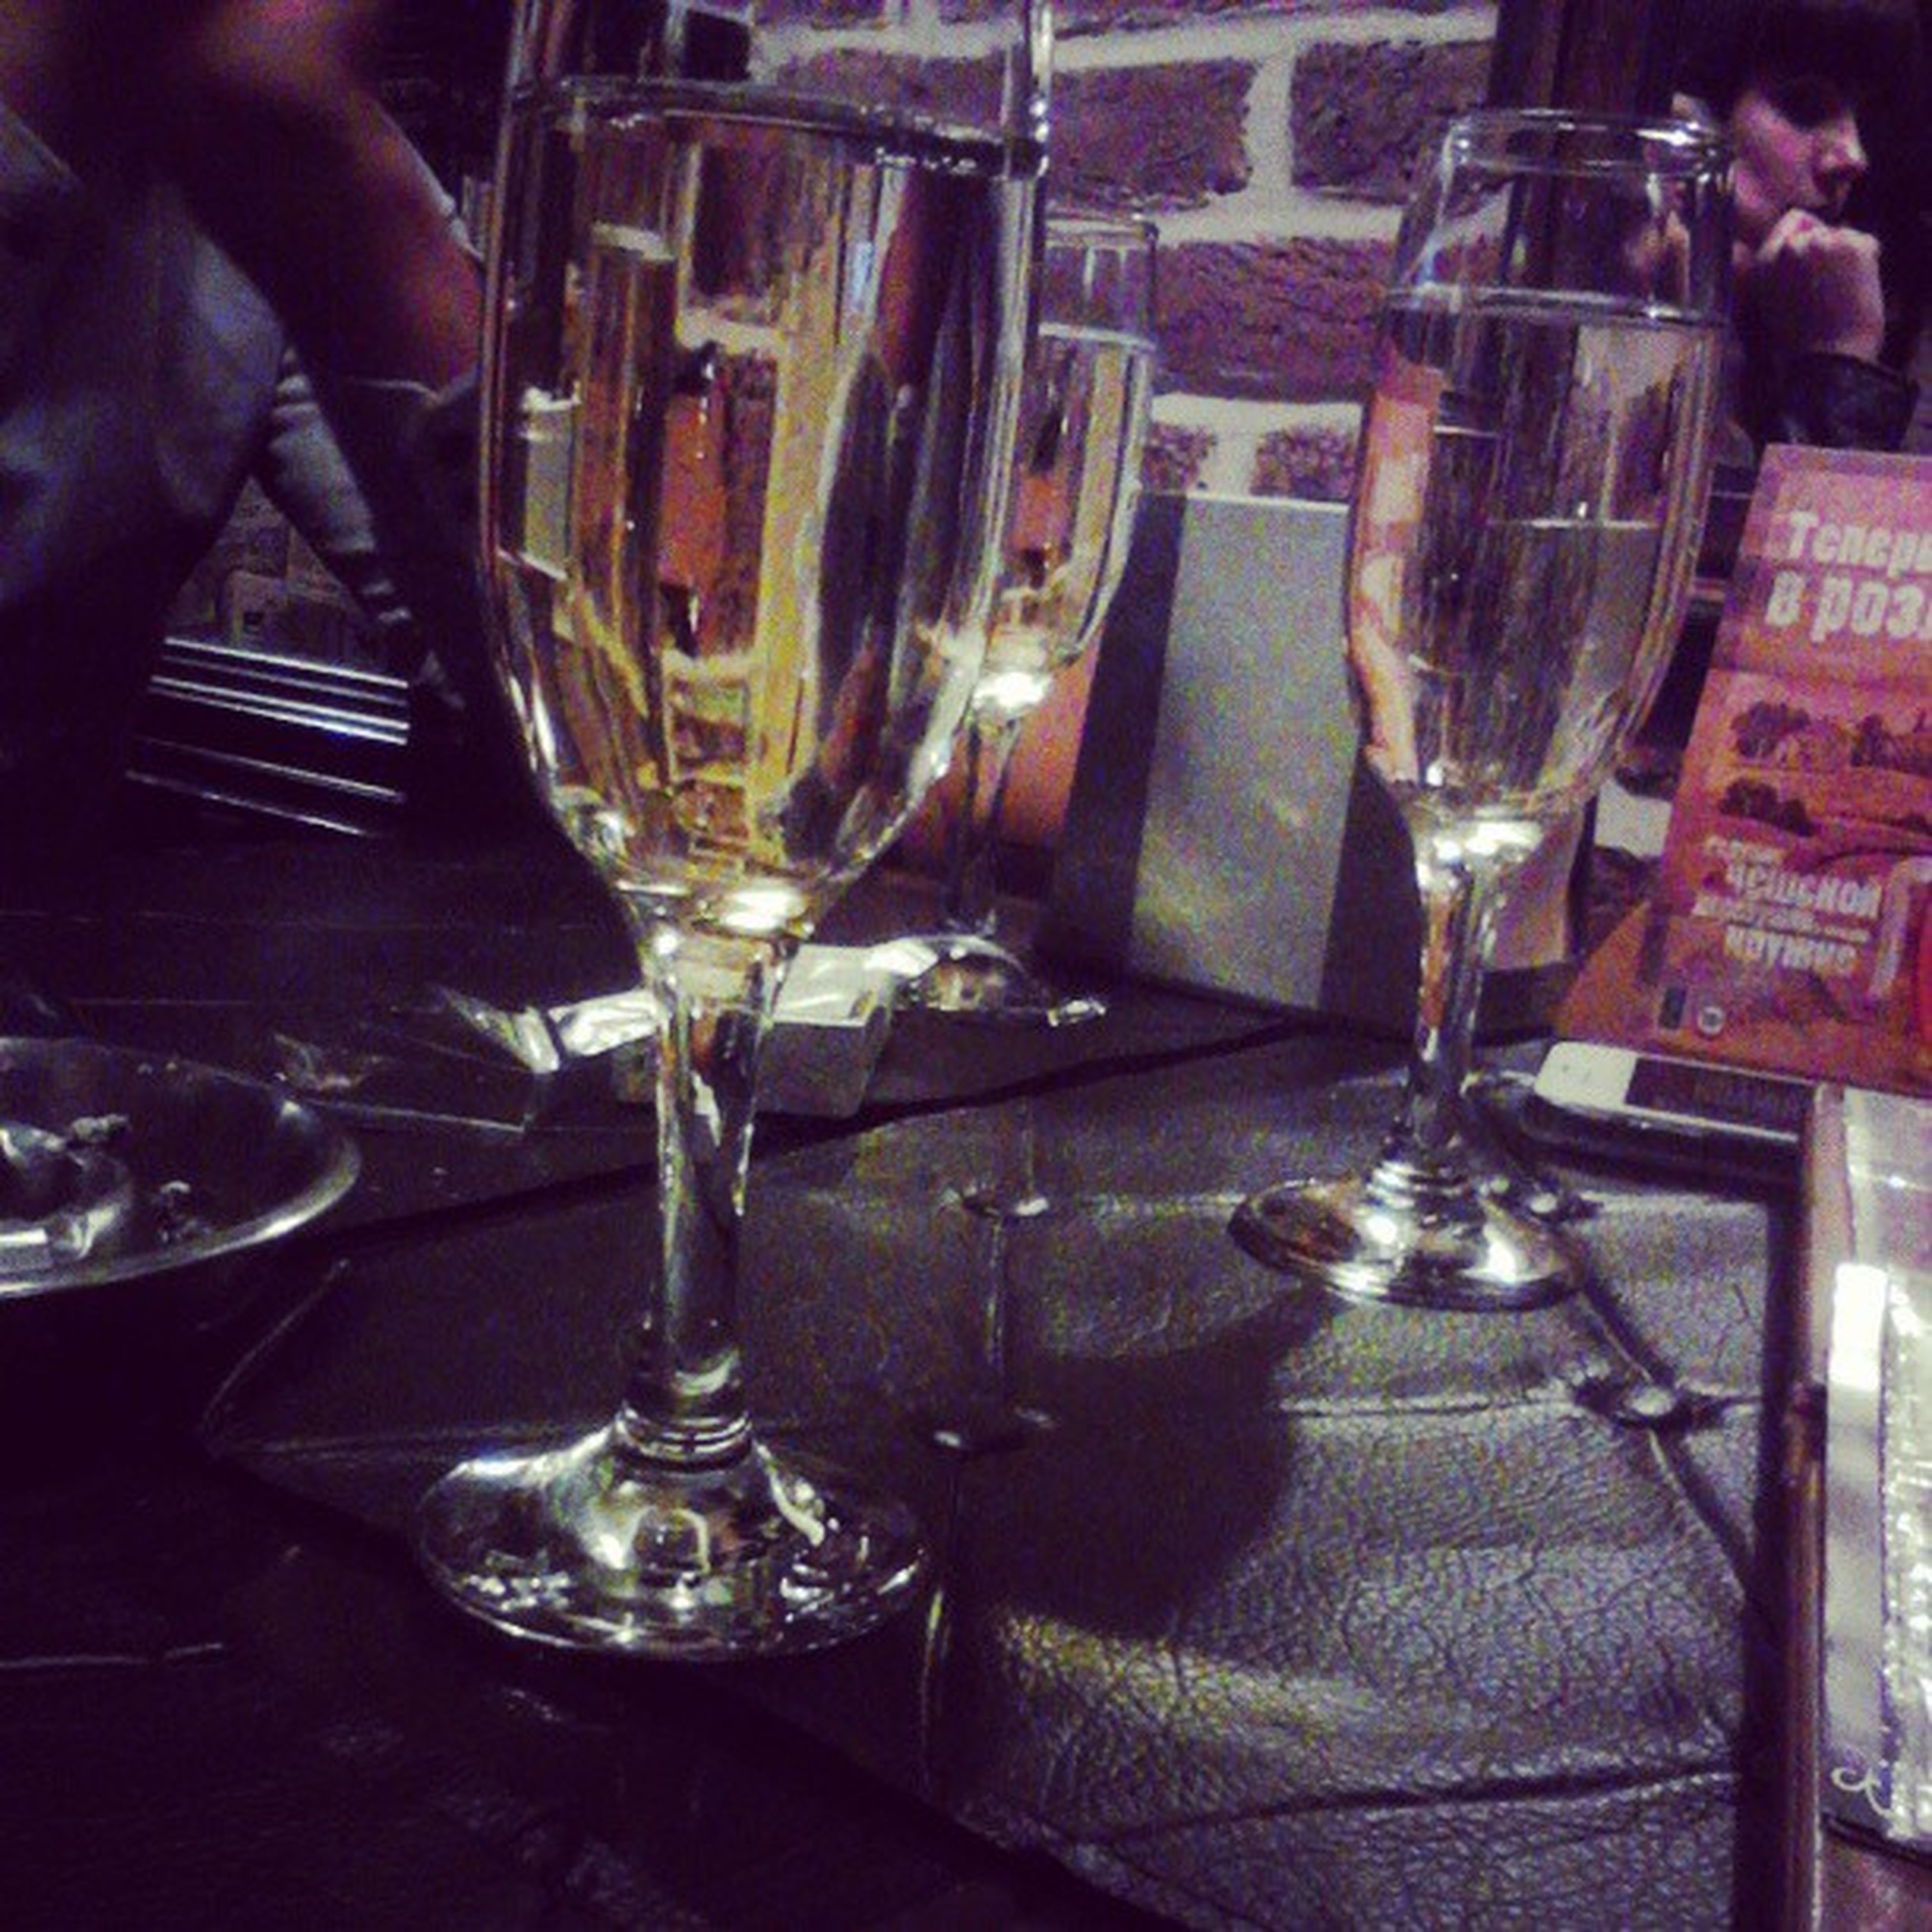 indoors, food and drink, drink, drinking glass, table, refreshment, person, wineglass, alcohol, glass - material, restaurant, part of, freshness, men, wine, lifestyles, midsection